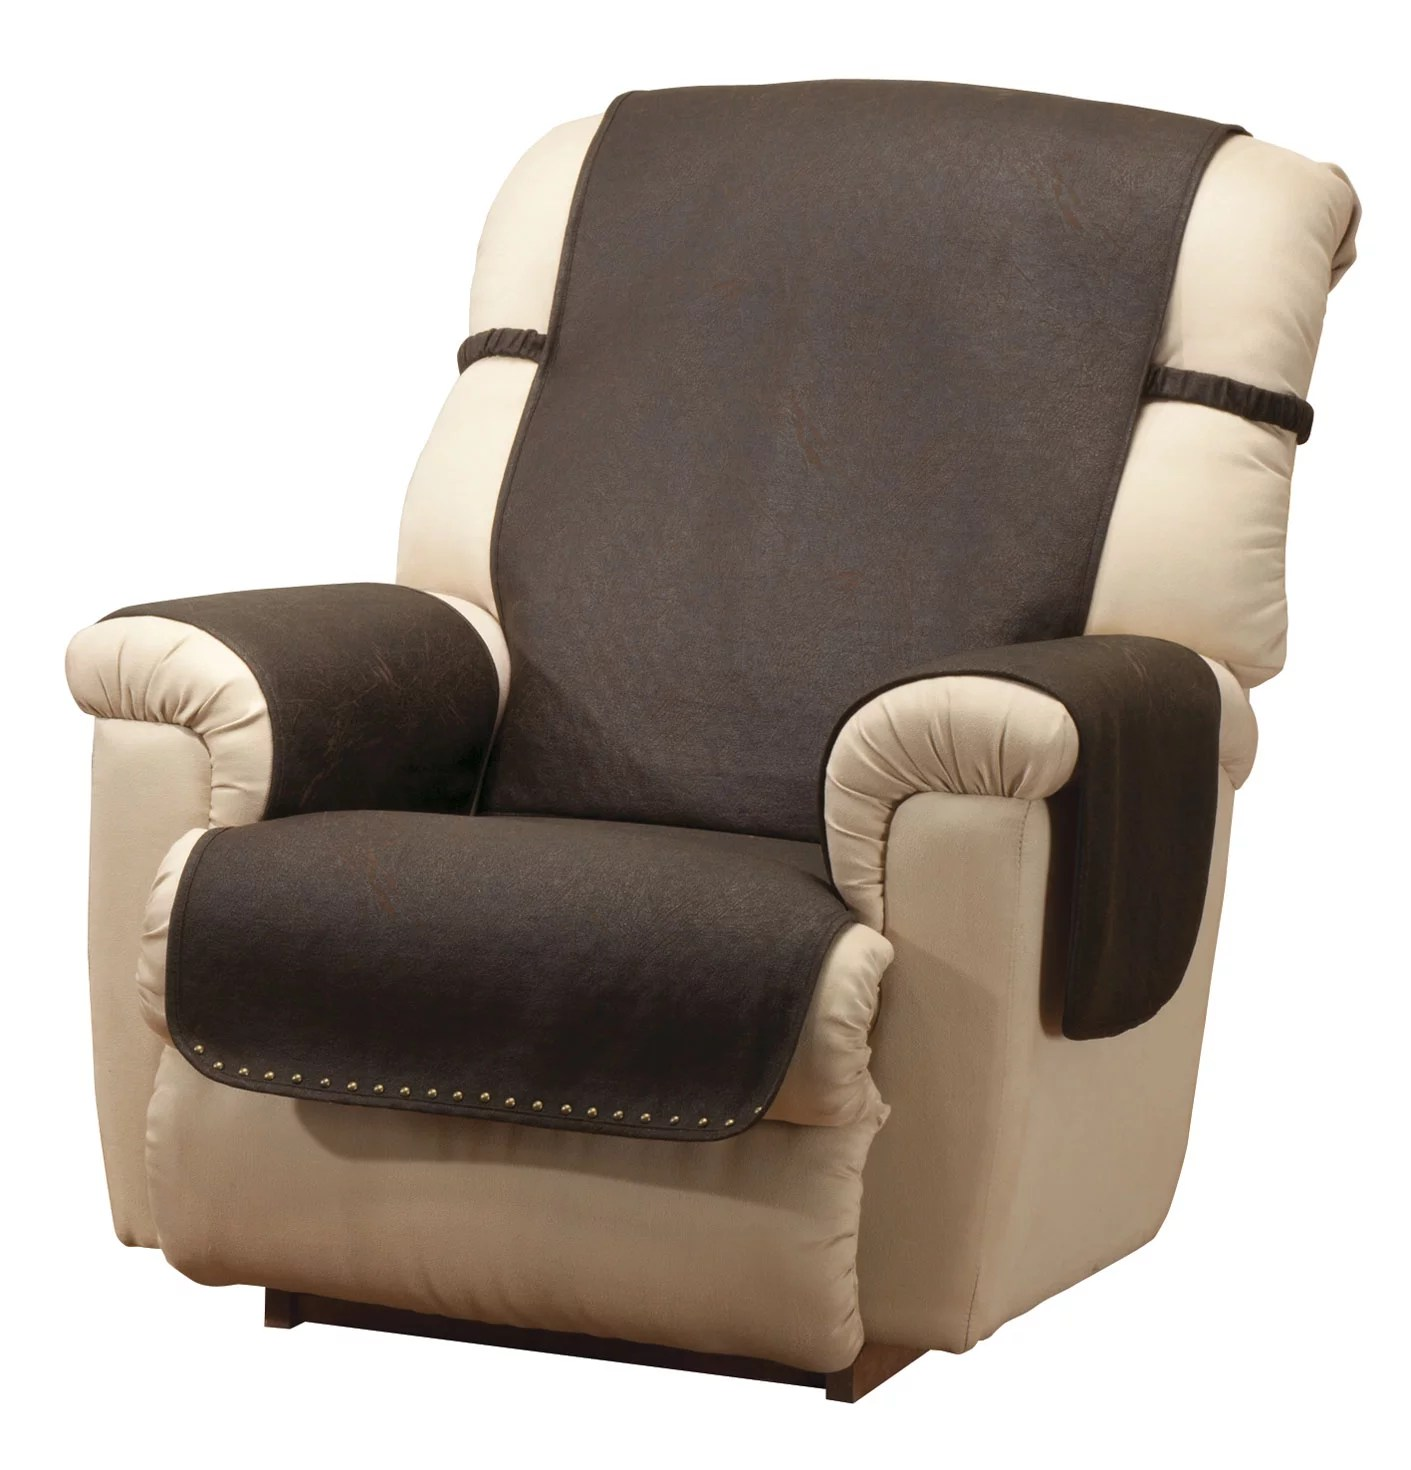 party chair covers walmart silver metal bar chairs leather look recliner cover - walmart.com